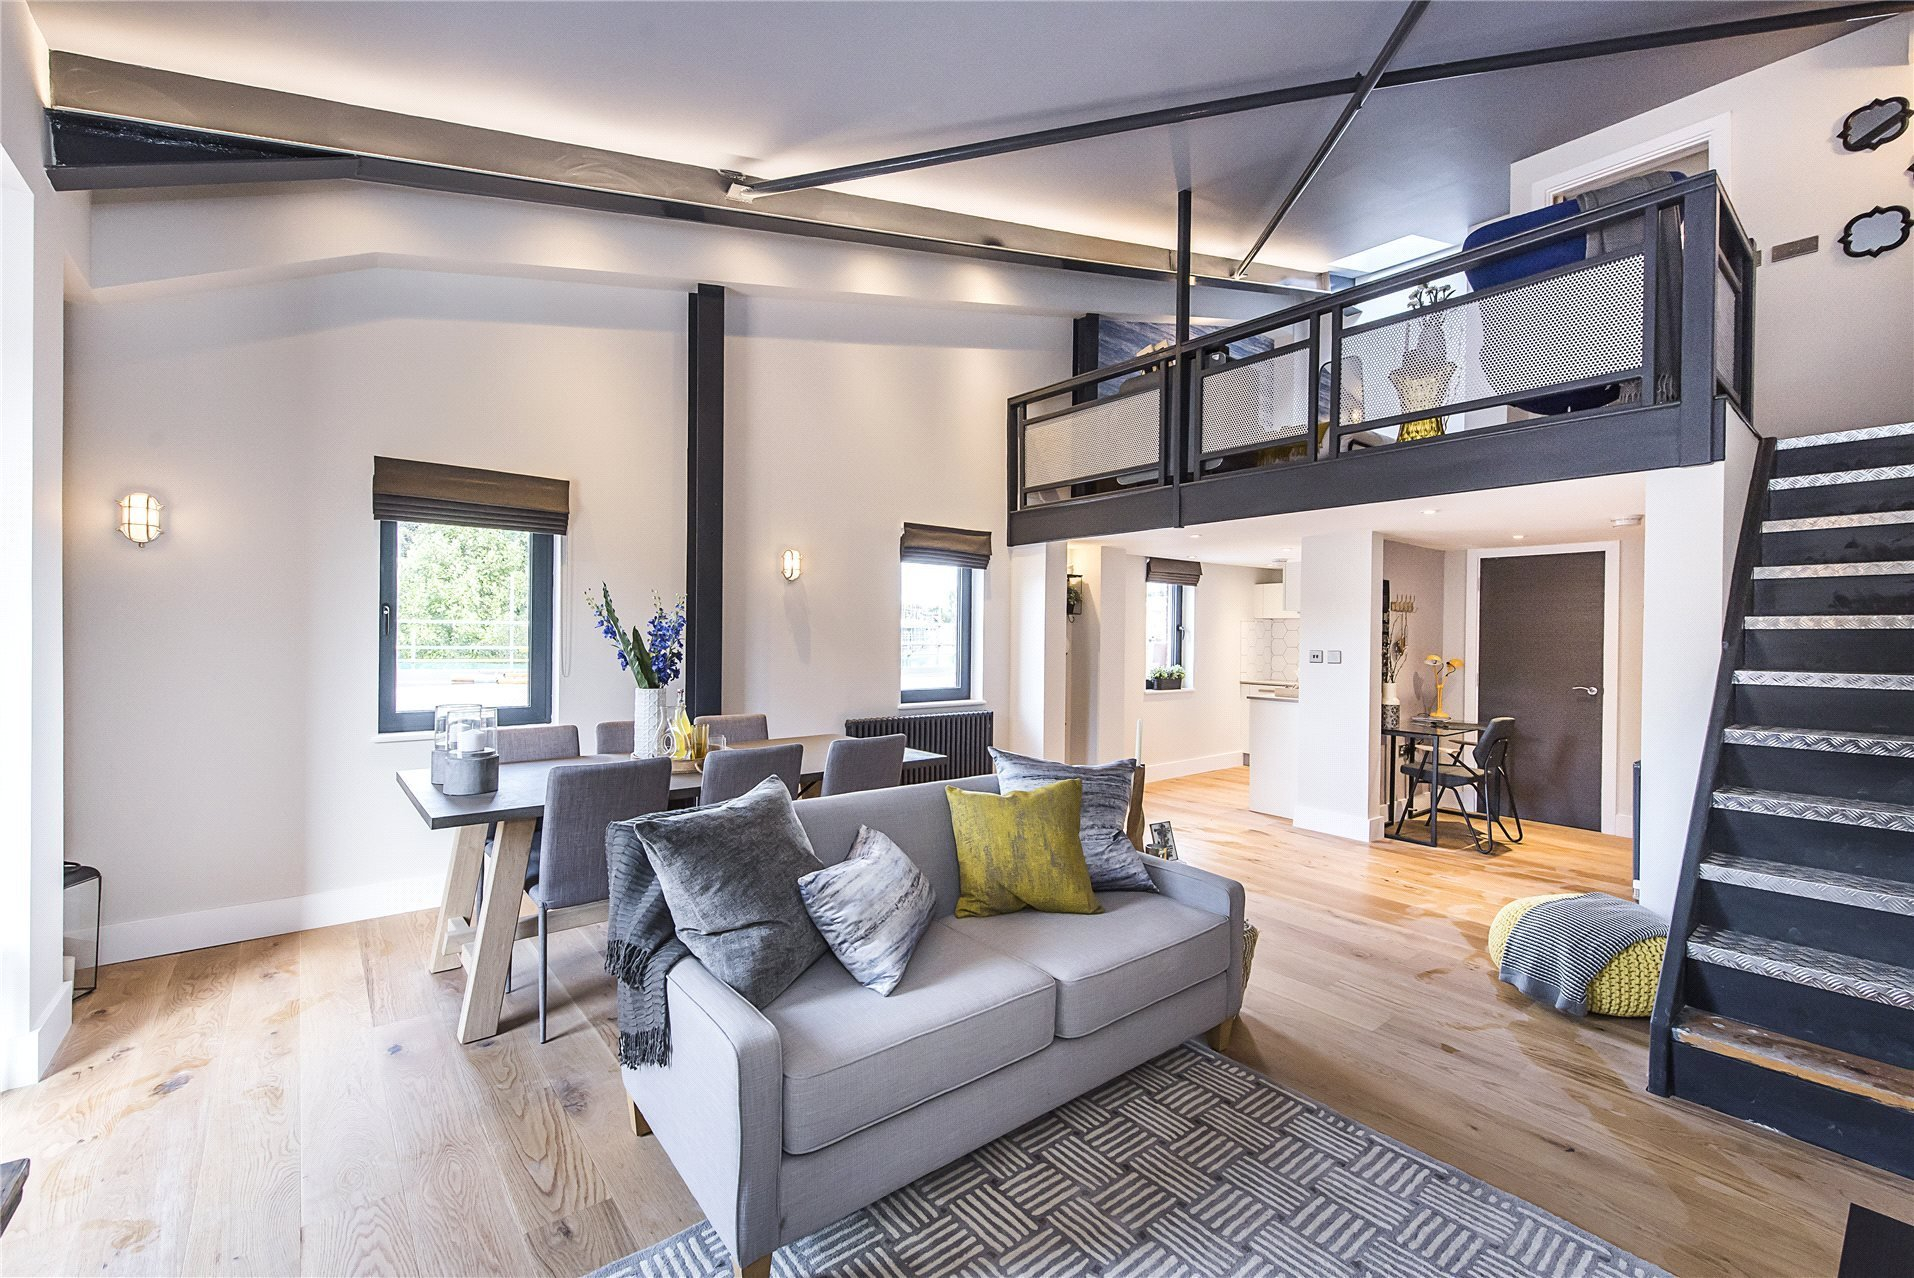 Best 1 Bedroom Apartment For Sale In Stoke Newington High Road With Pictures Original 1024 x 768